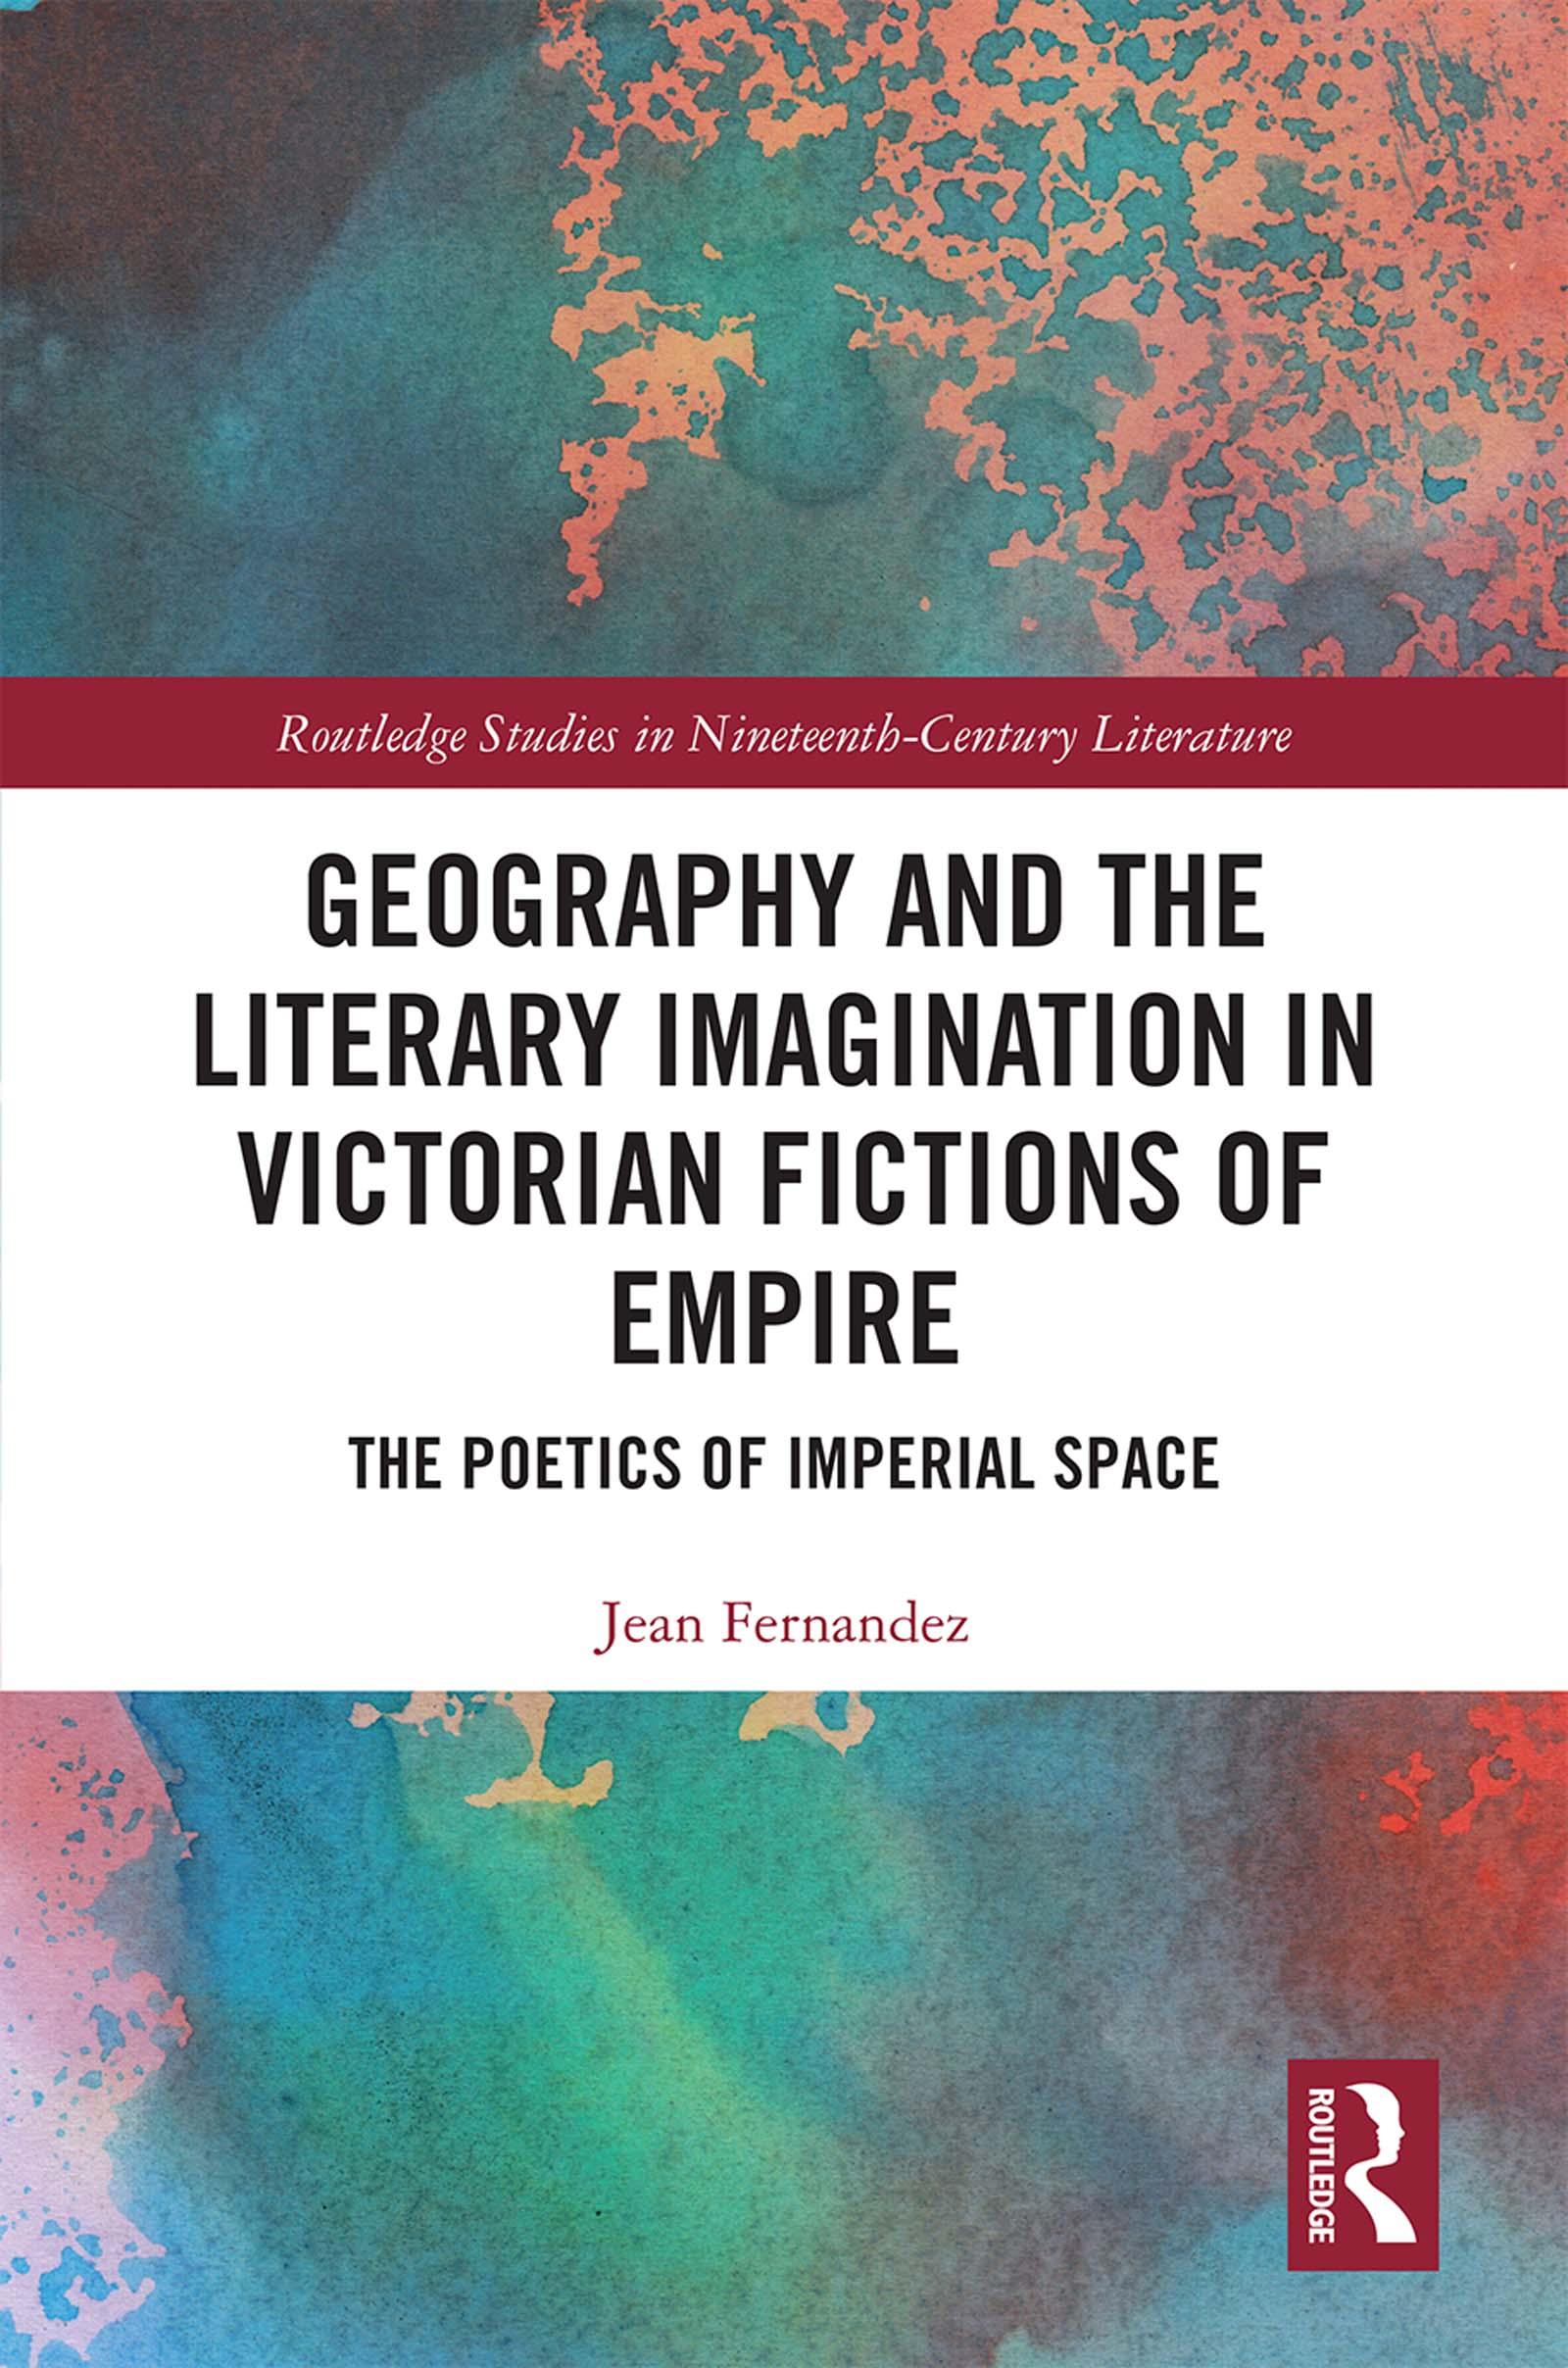 Geography and the Literary Imagination in Victorian Fictions of Empire: The Poetics of Imperial Space book cover